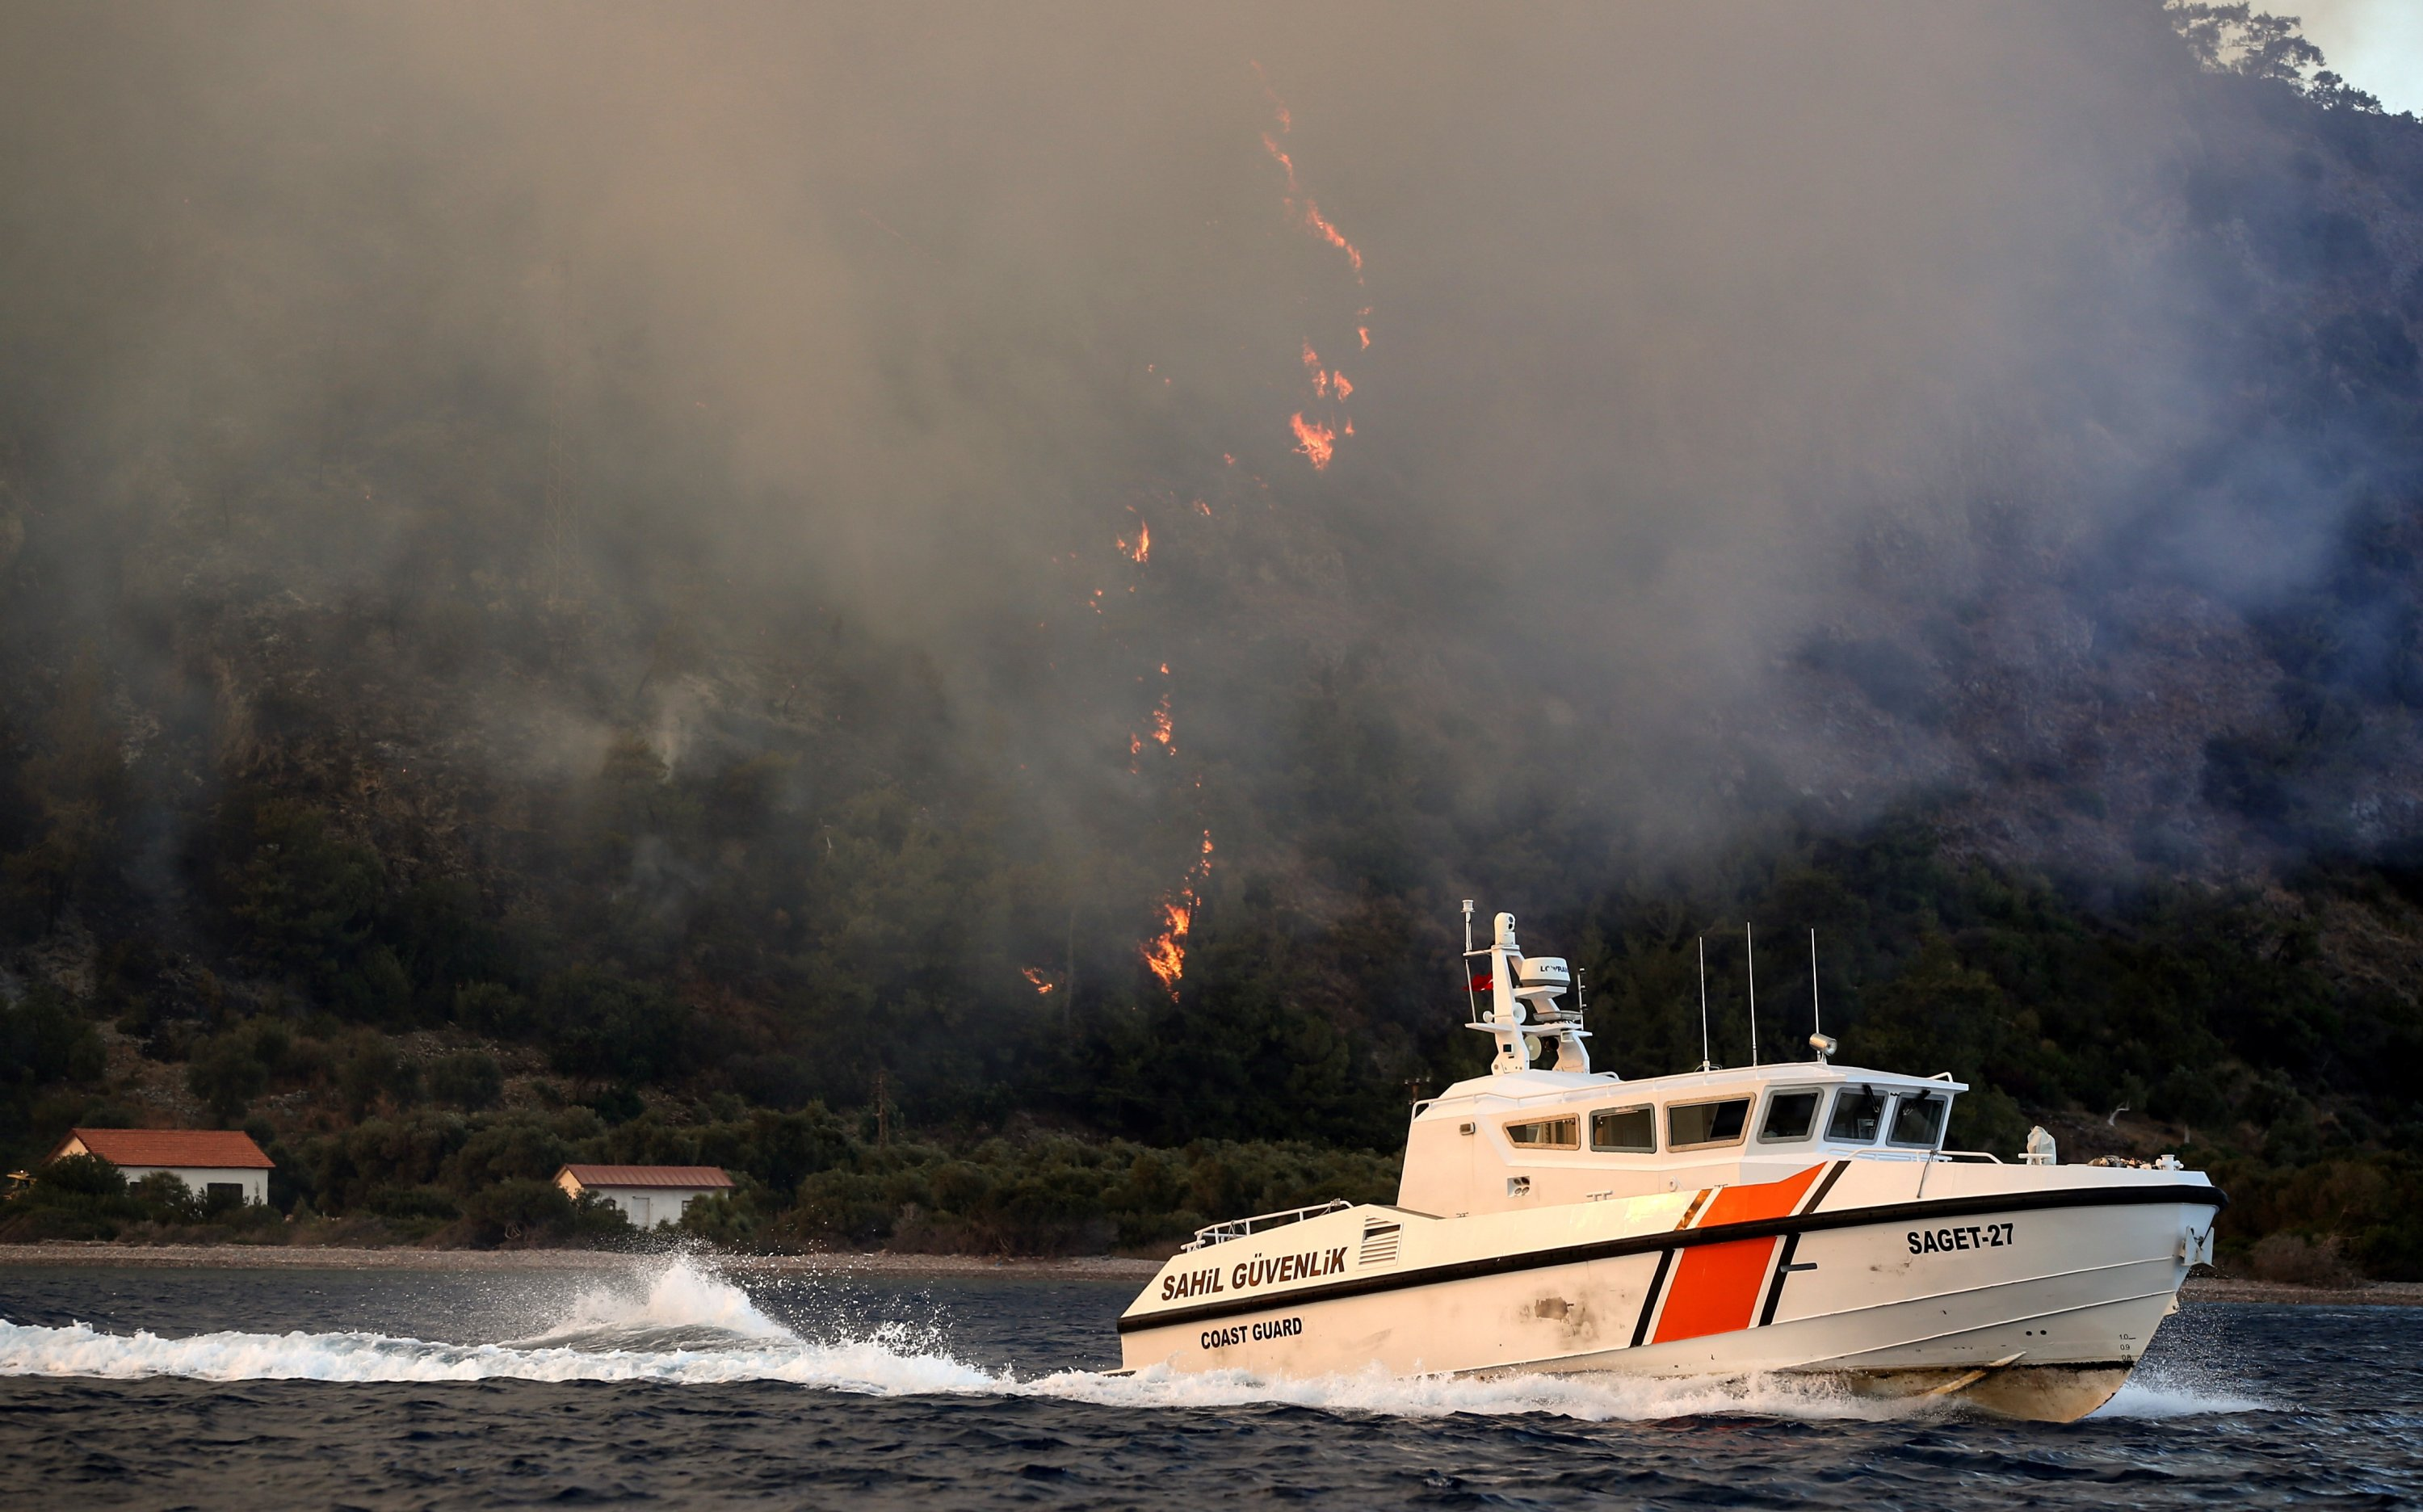 A Turkish Coast Guard boat walks past a burning forest fire in a rural area of Milas district in Muğla, Turkey on August 2, 2021 (EPA Photo)